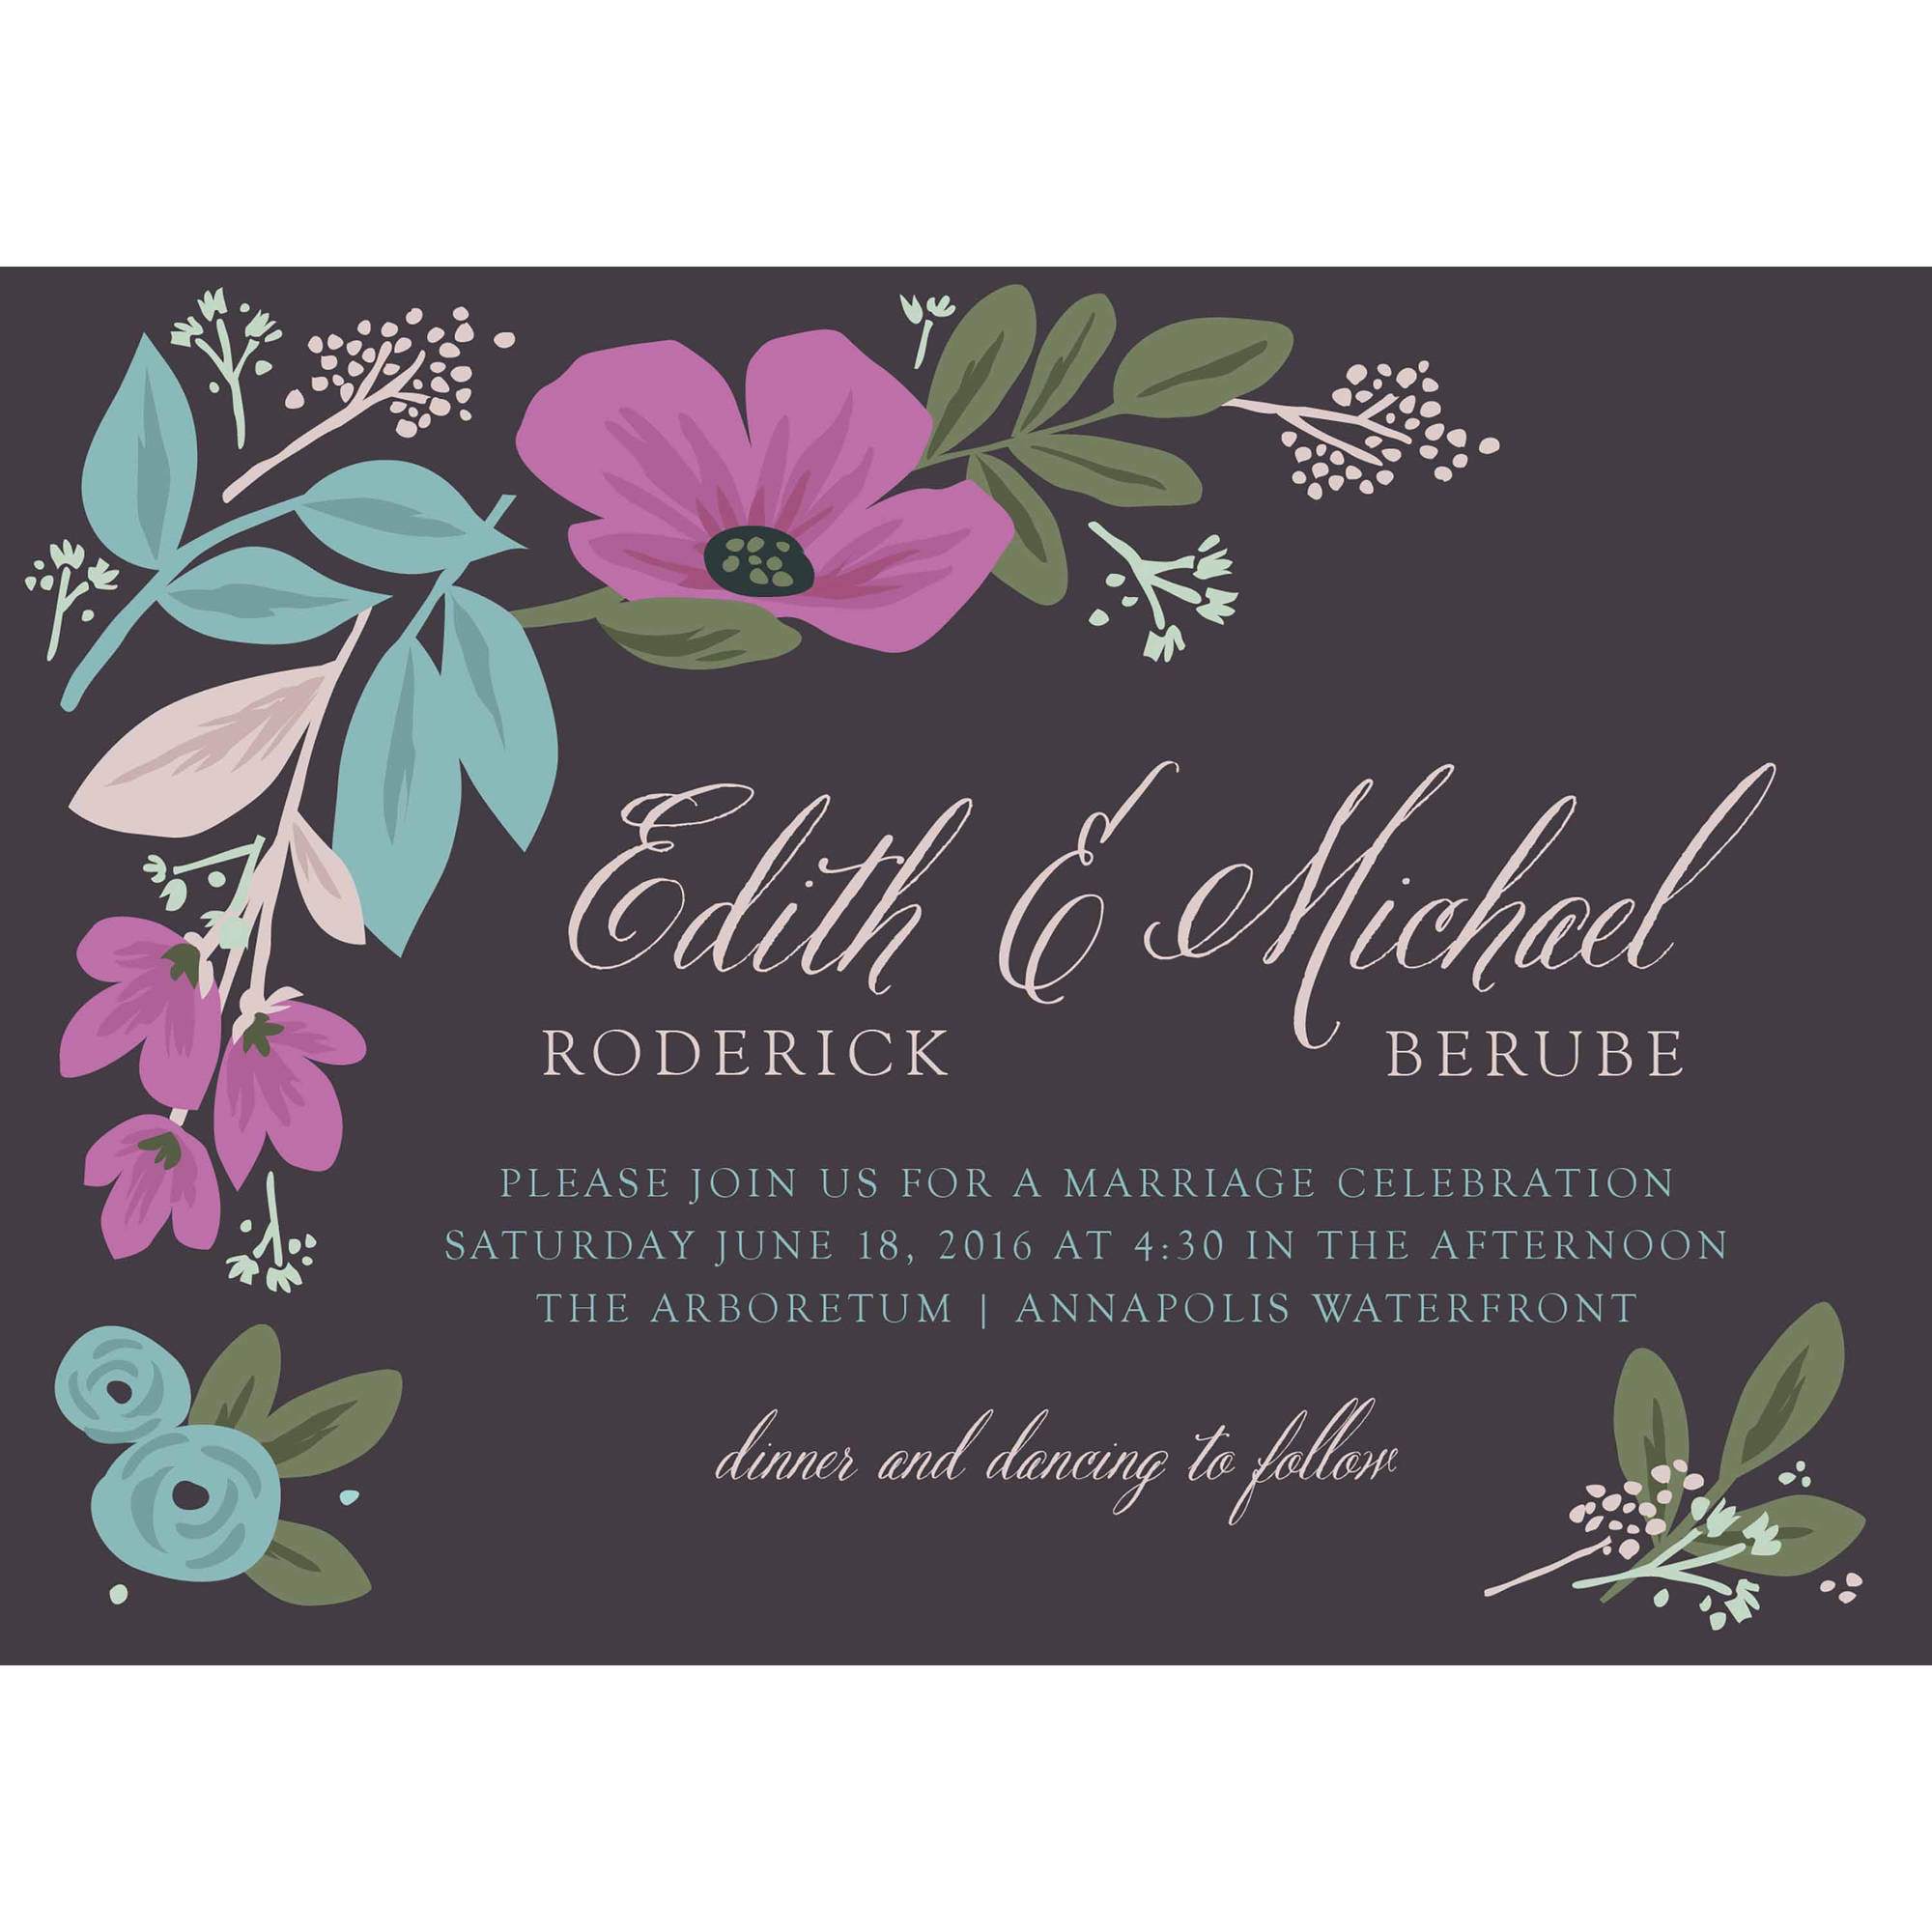 Sketchbook Botanical Standard Wedding Invitation